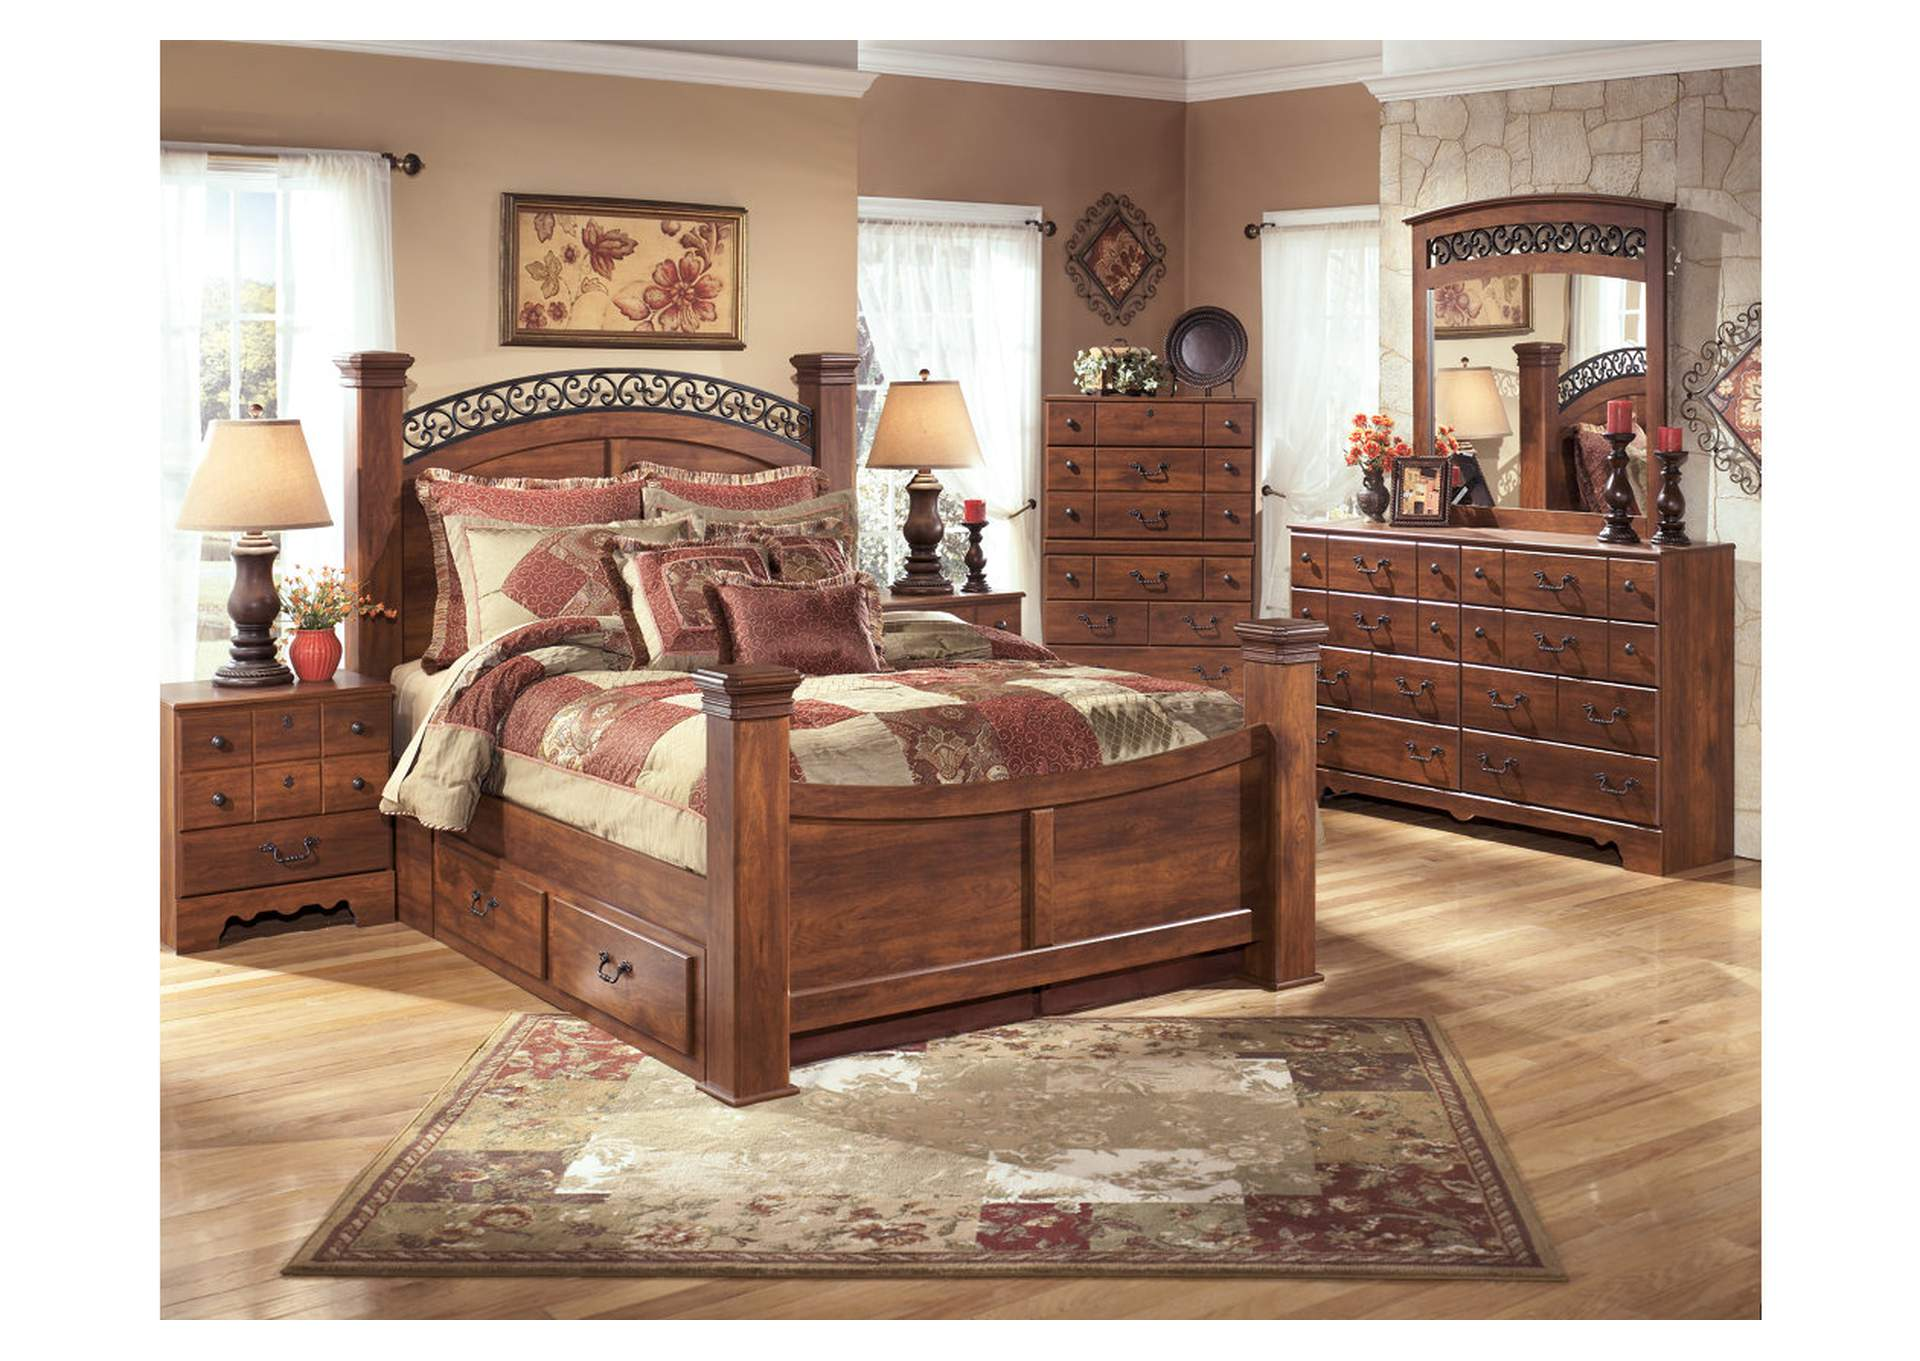 Timberline King Poster Storage Bed,Signature Design By Ashley